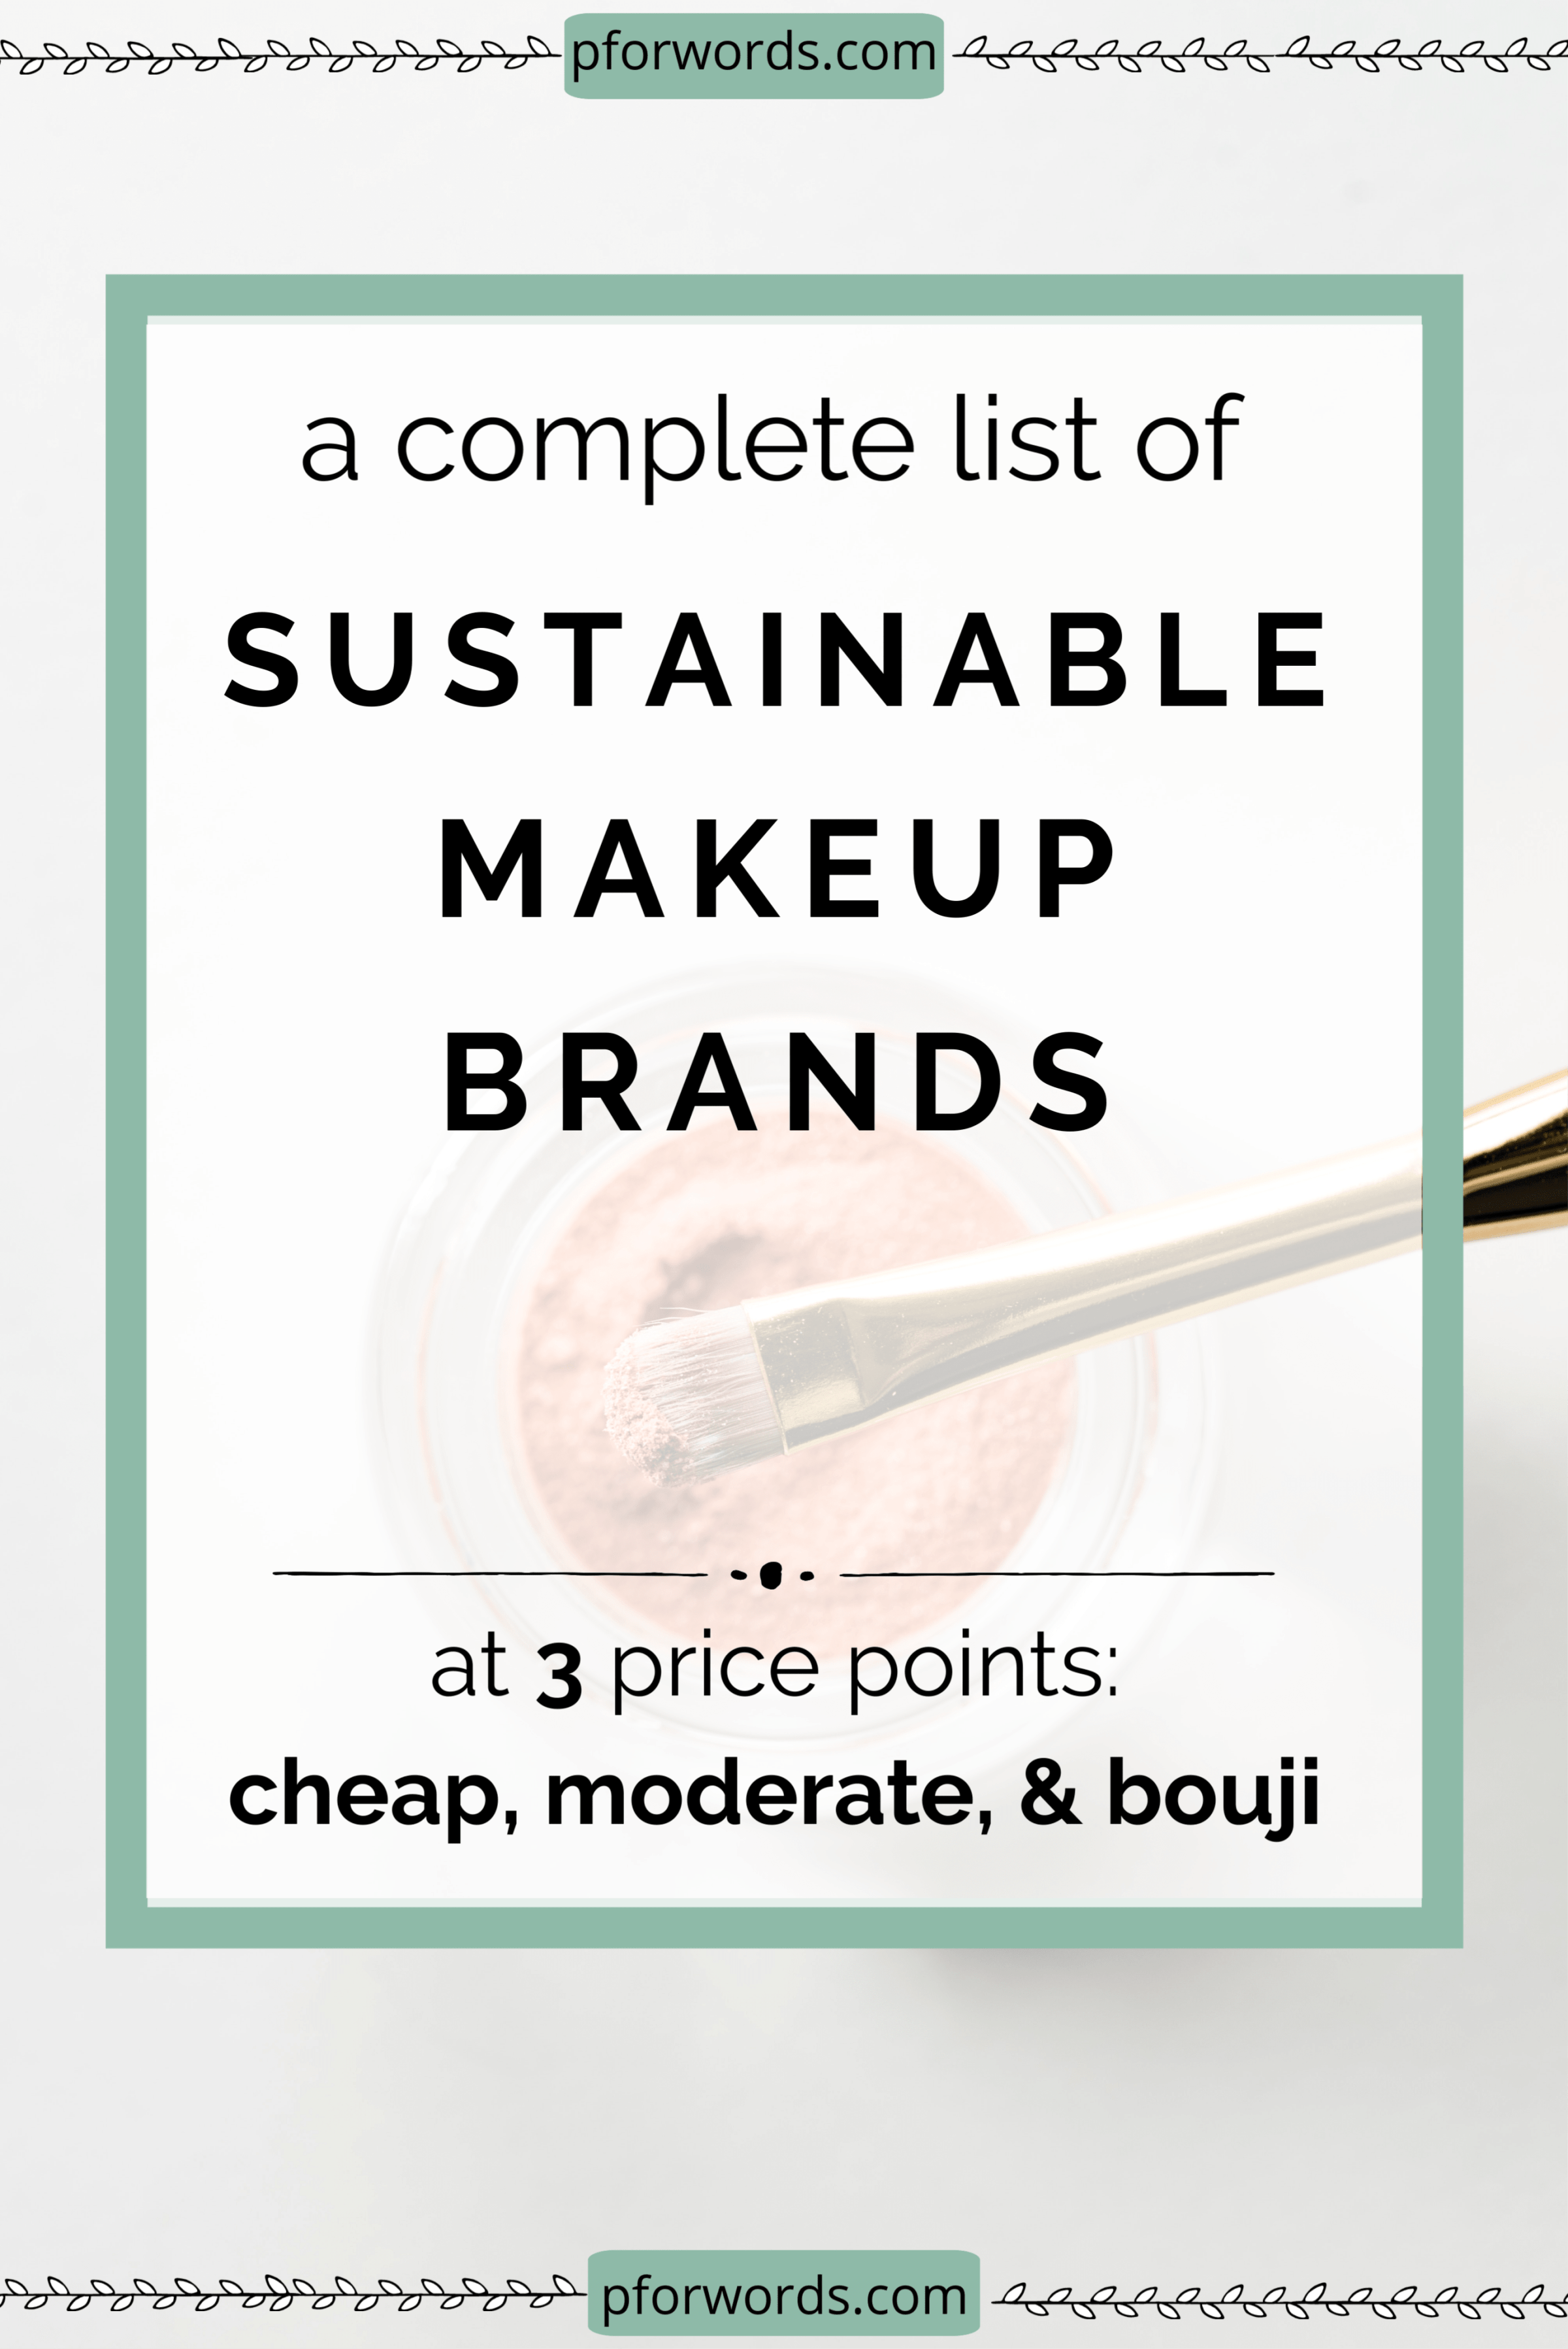 Afforadable Zero Waste, Sustainable, & Clean Makeup Brands